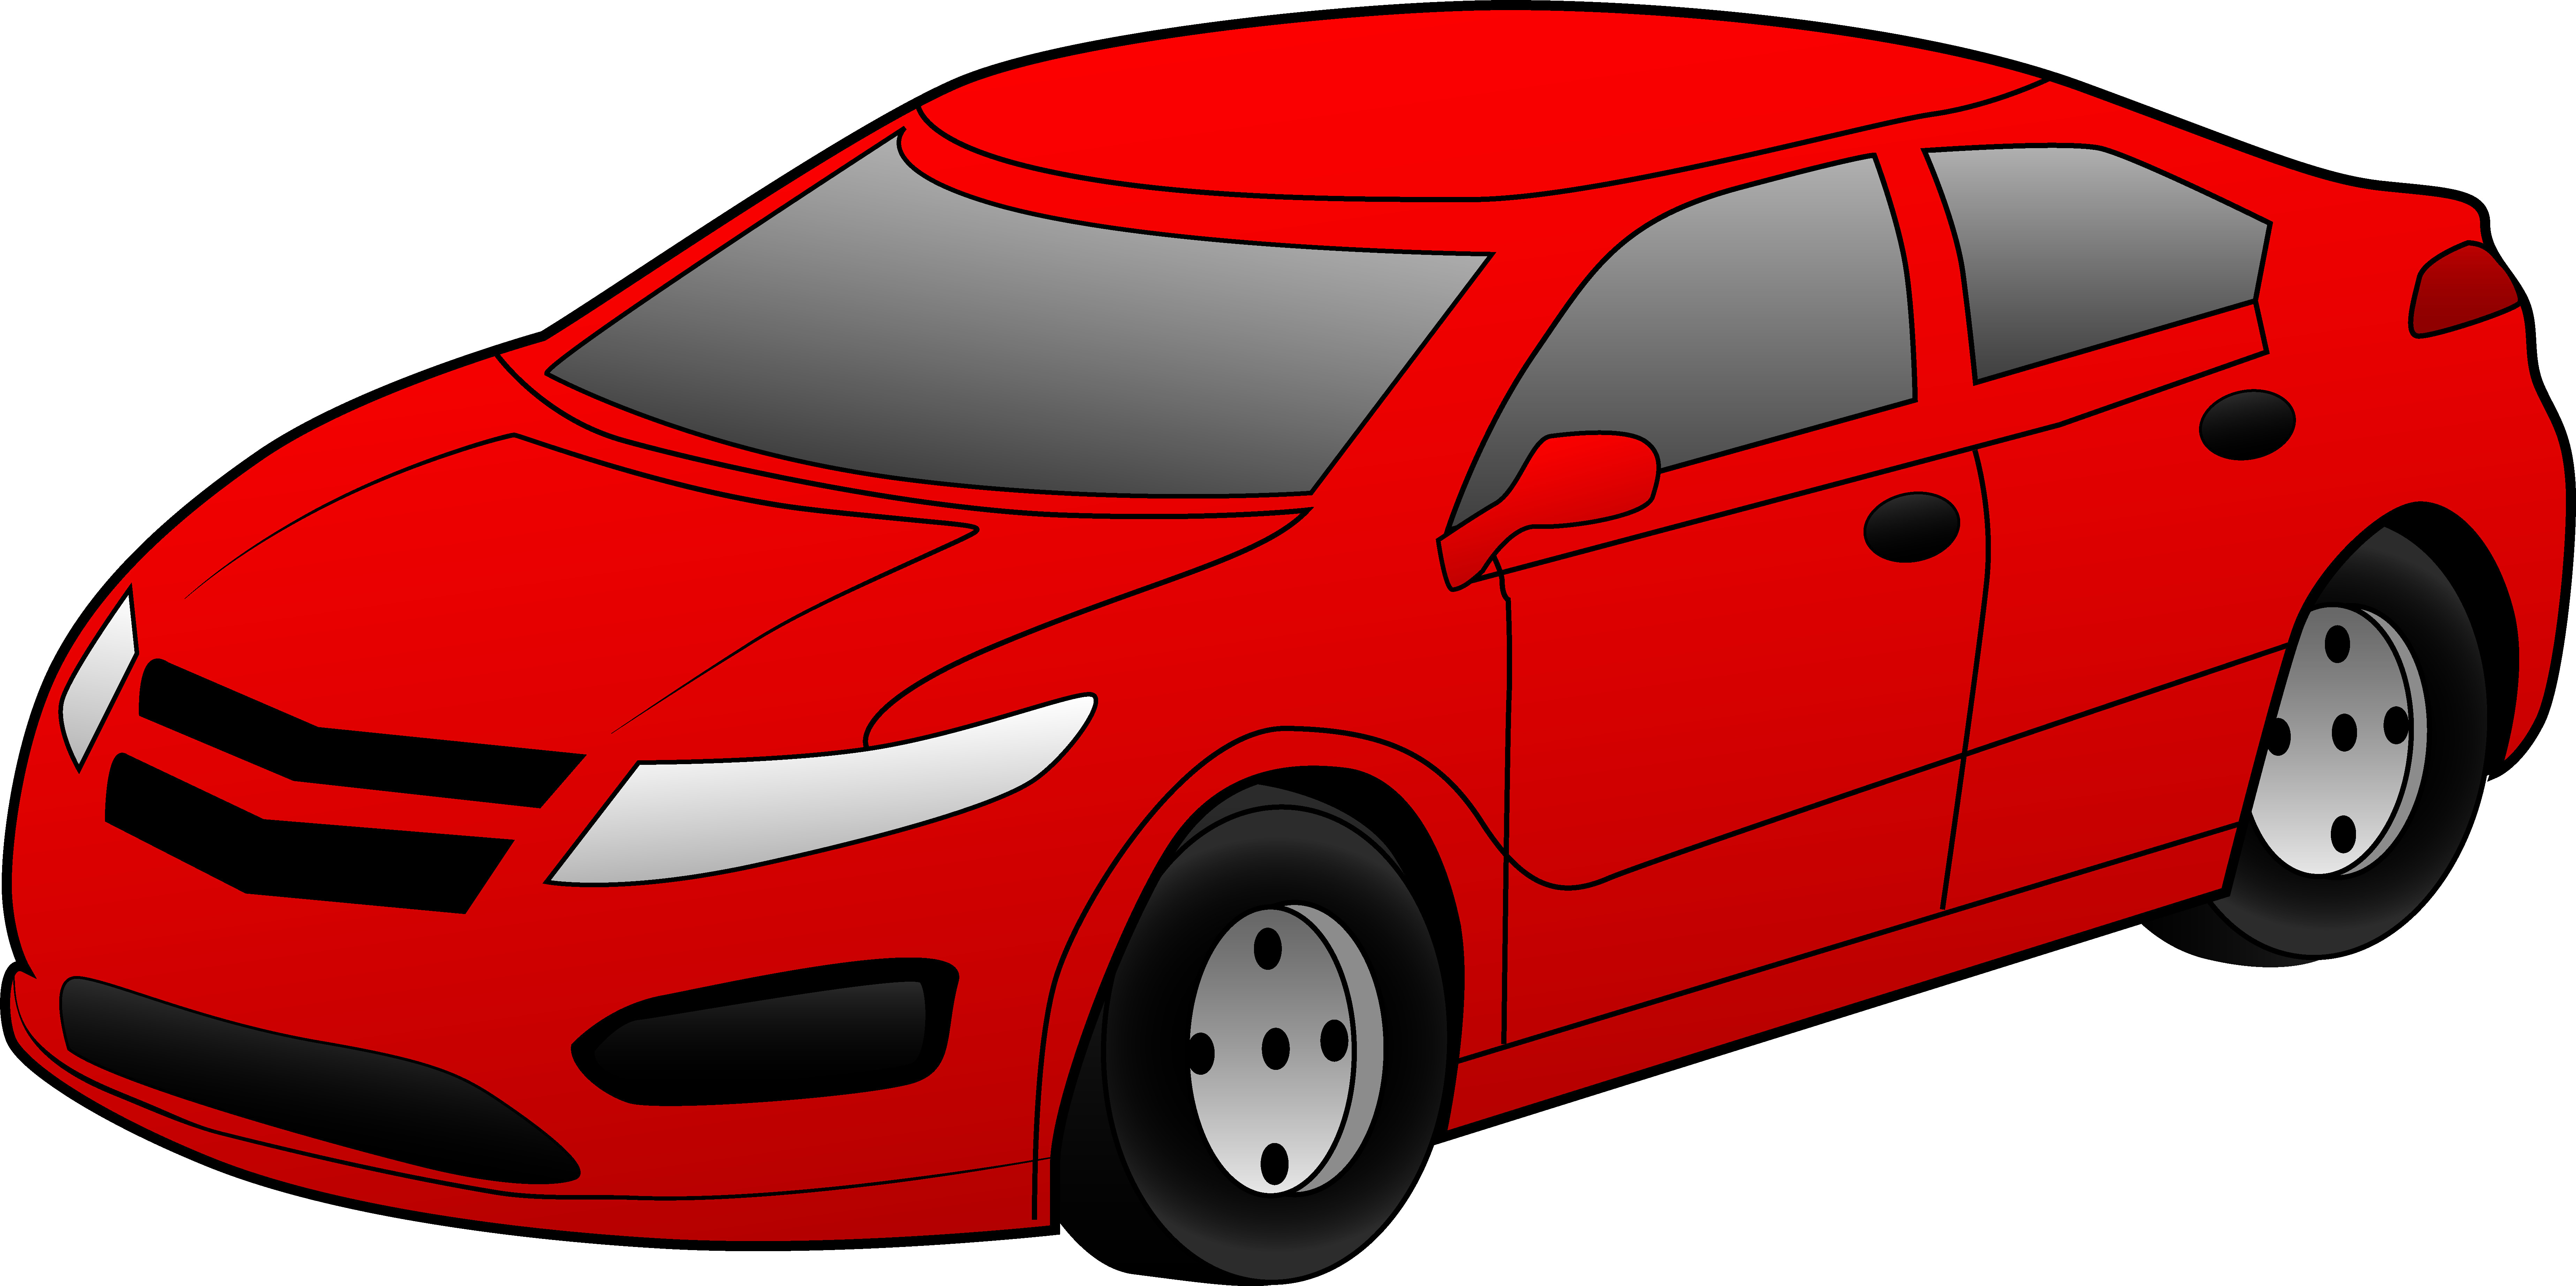 Clipart car. At getdrawings com free